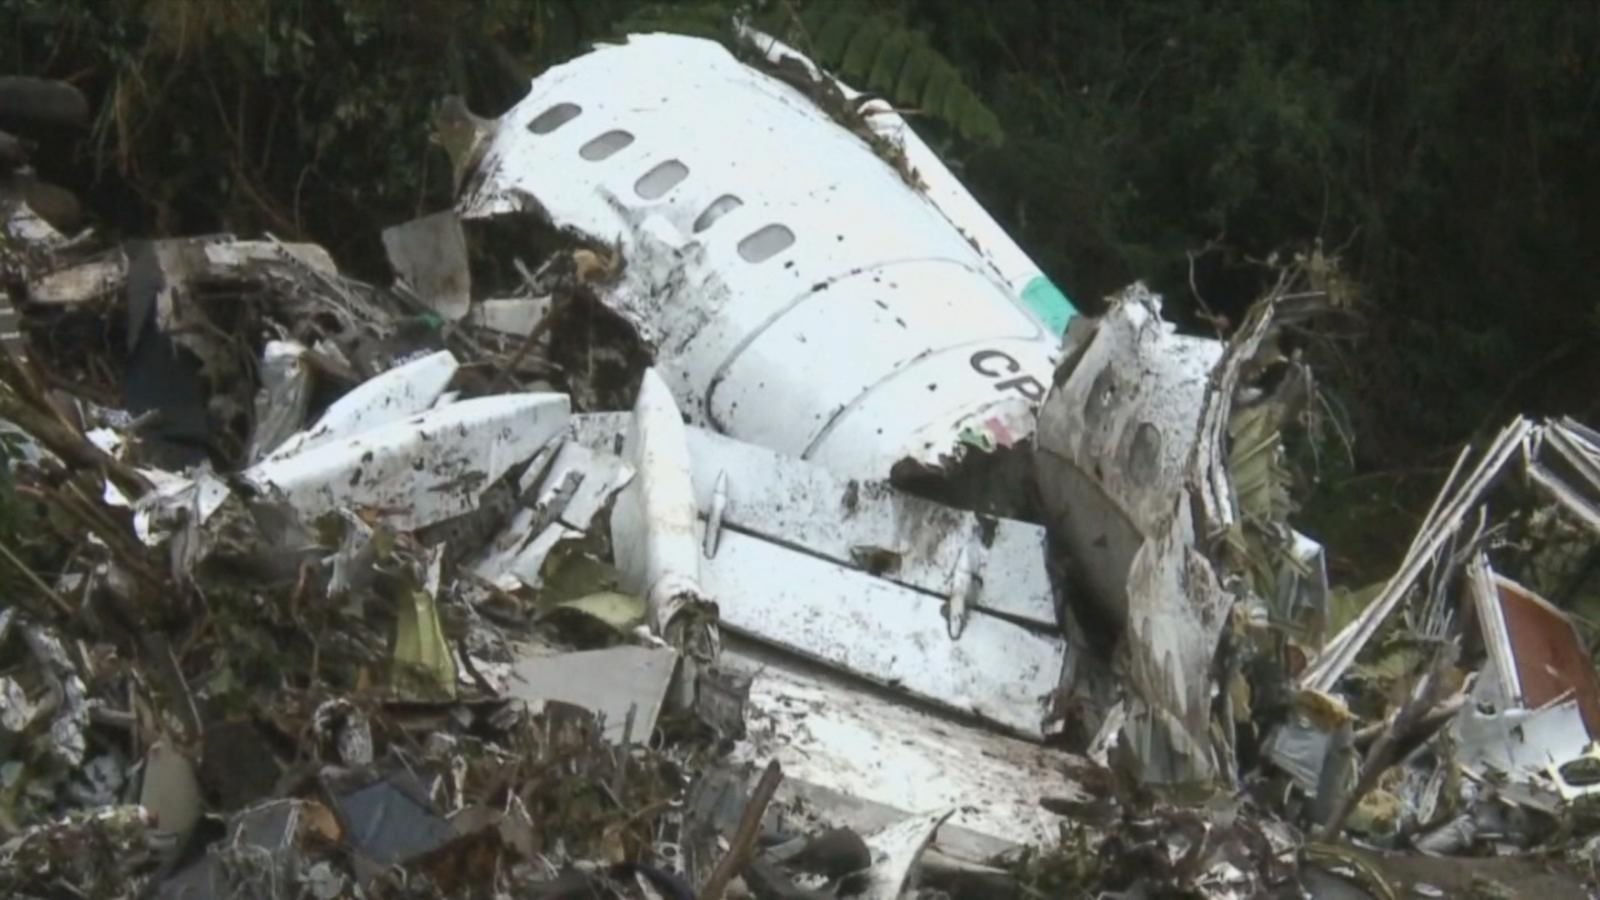 VIDEO: Hear From the Survivors of the Columbia Plane Crash